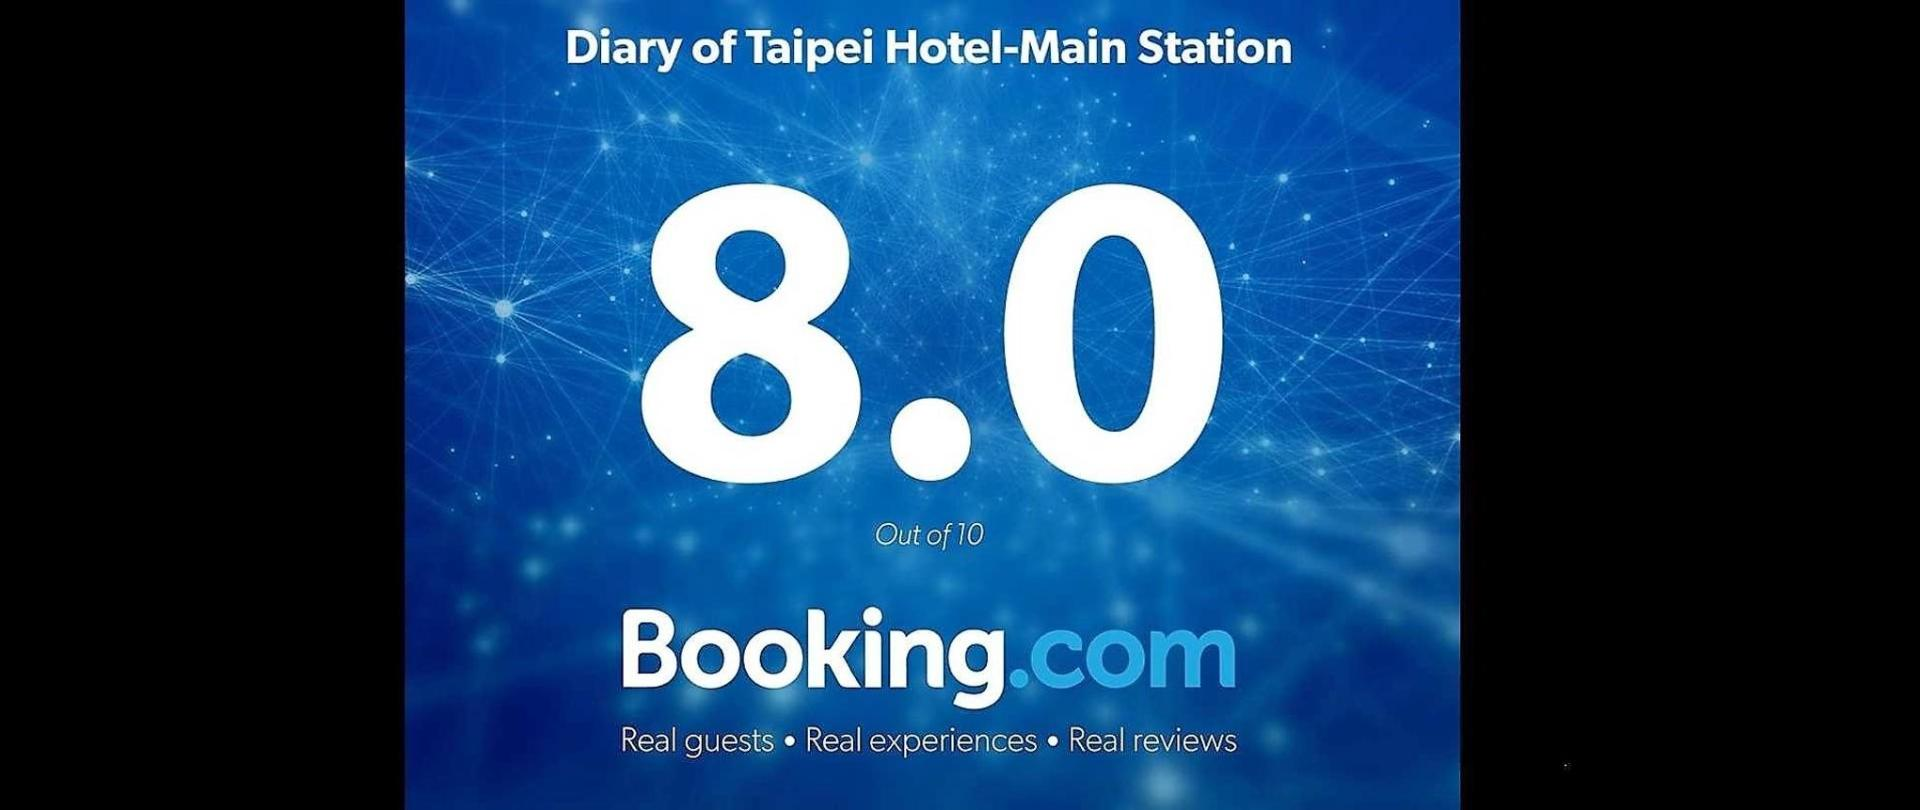 Diary of Taipei Hotel-Main Station